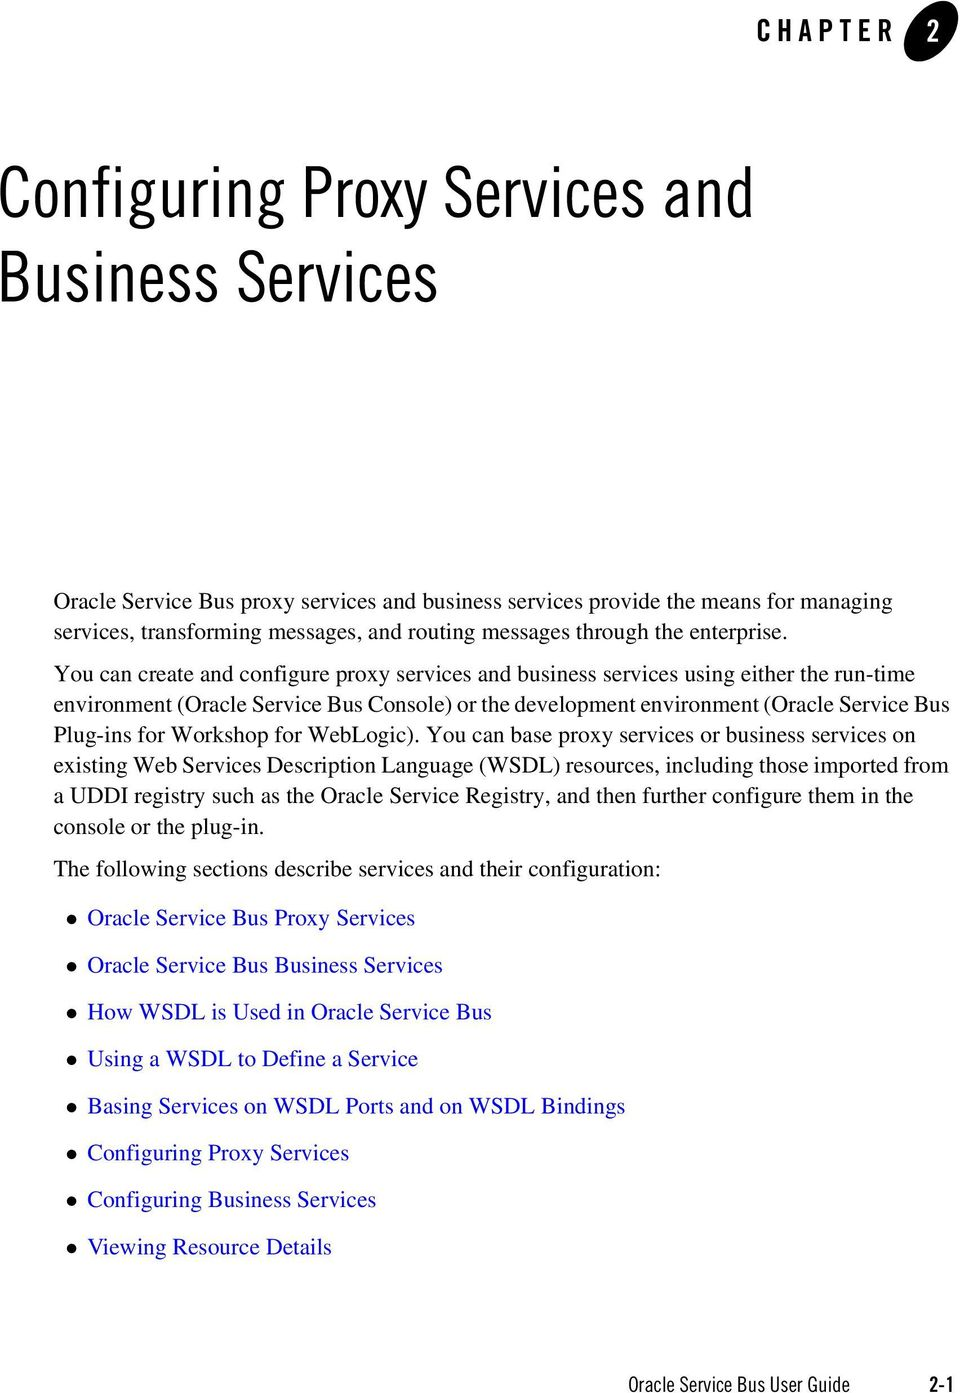 You can create and configure proxy services and business services using either the run-time environment (Oracle Service Bus Console) or the development environment (Oracle Service Bus Plug-ins for